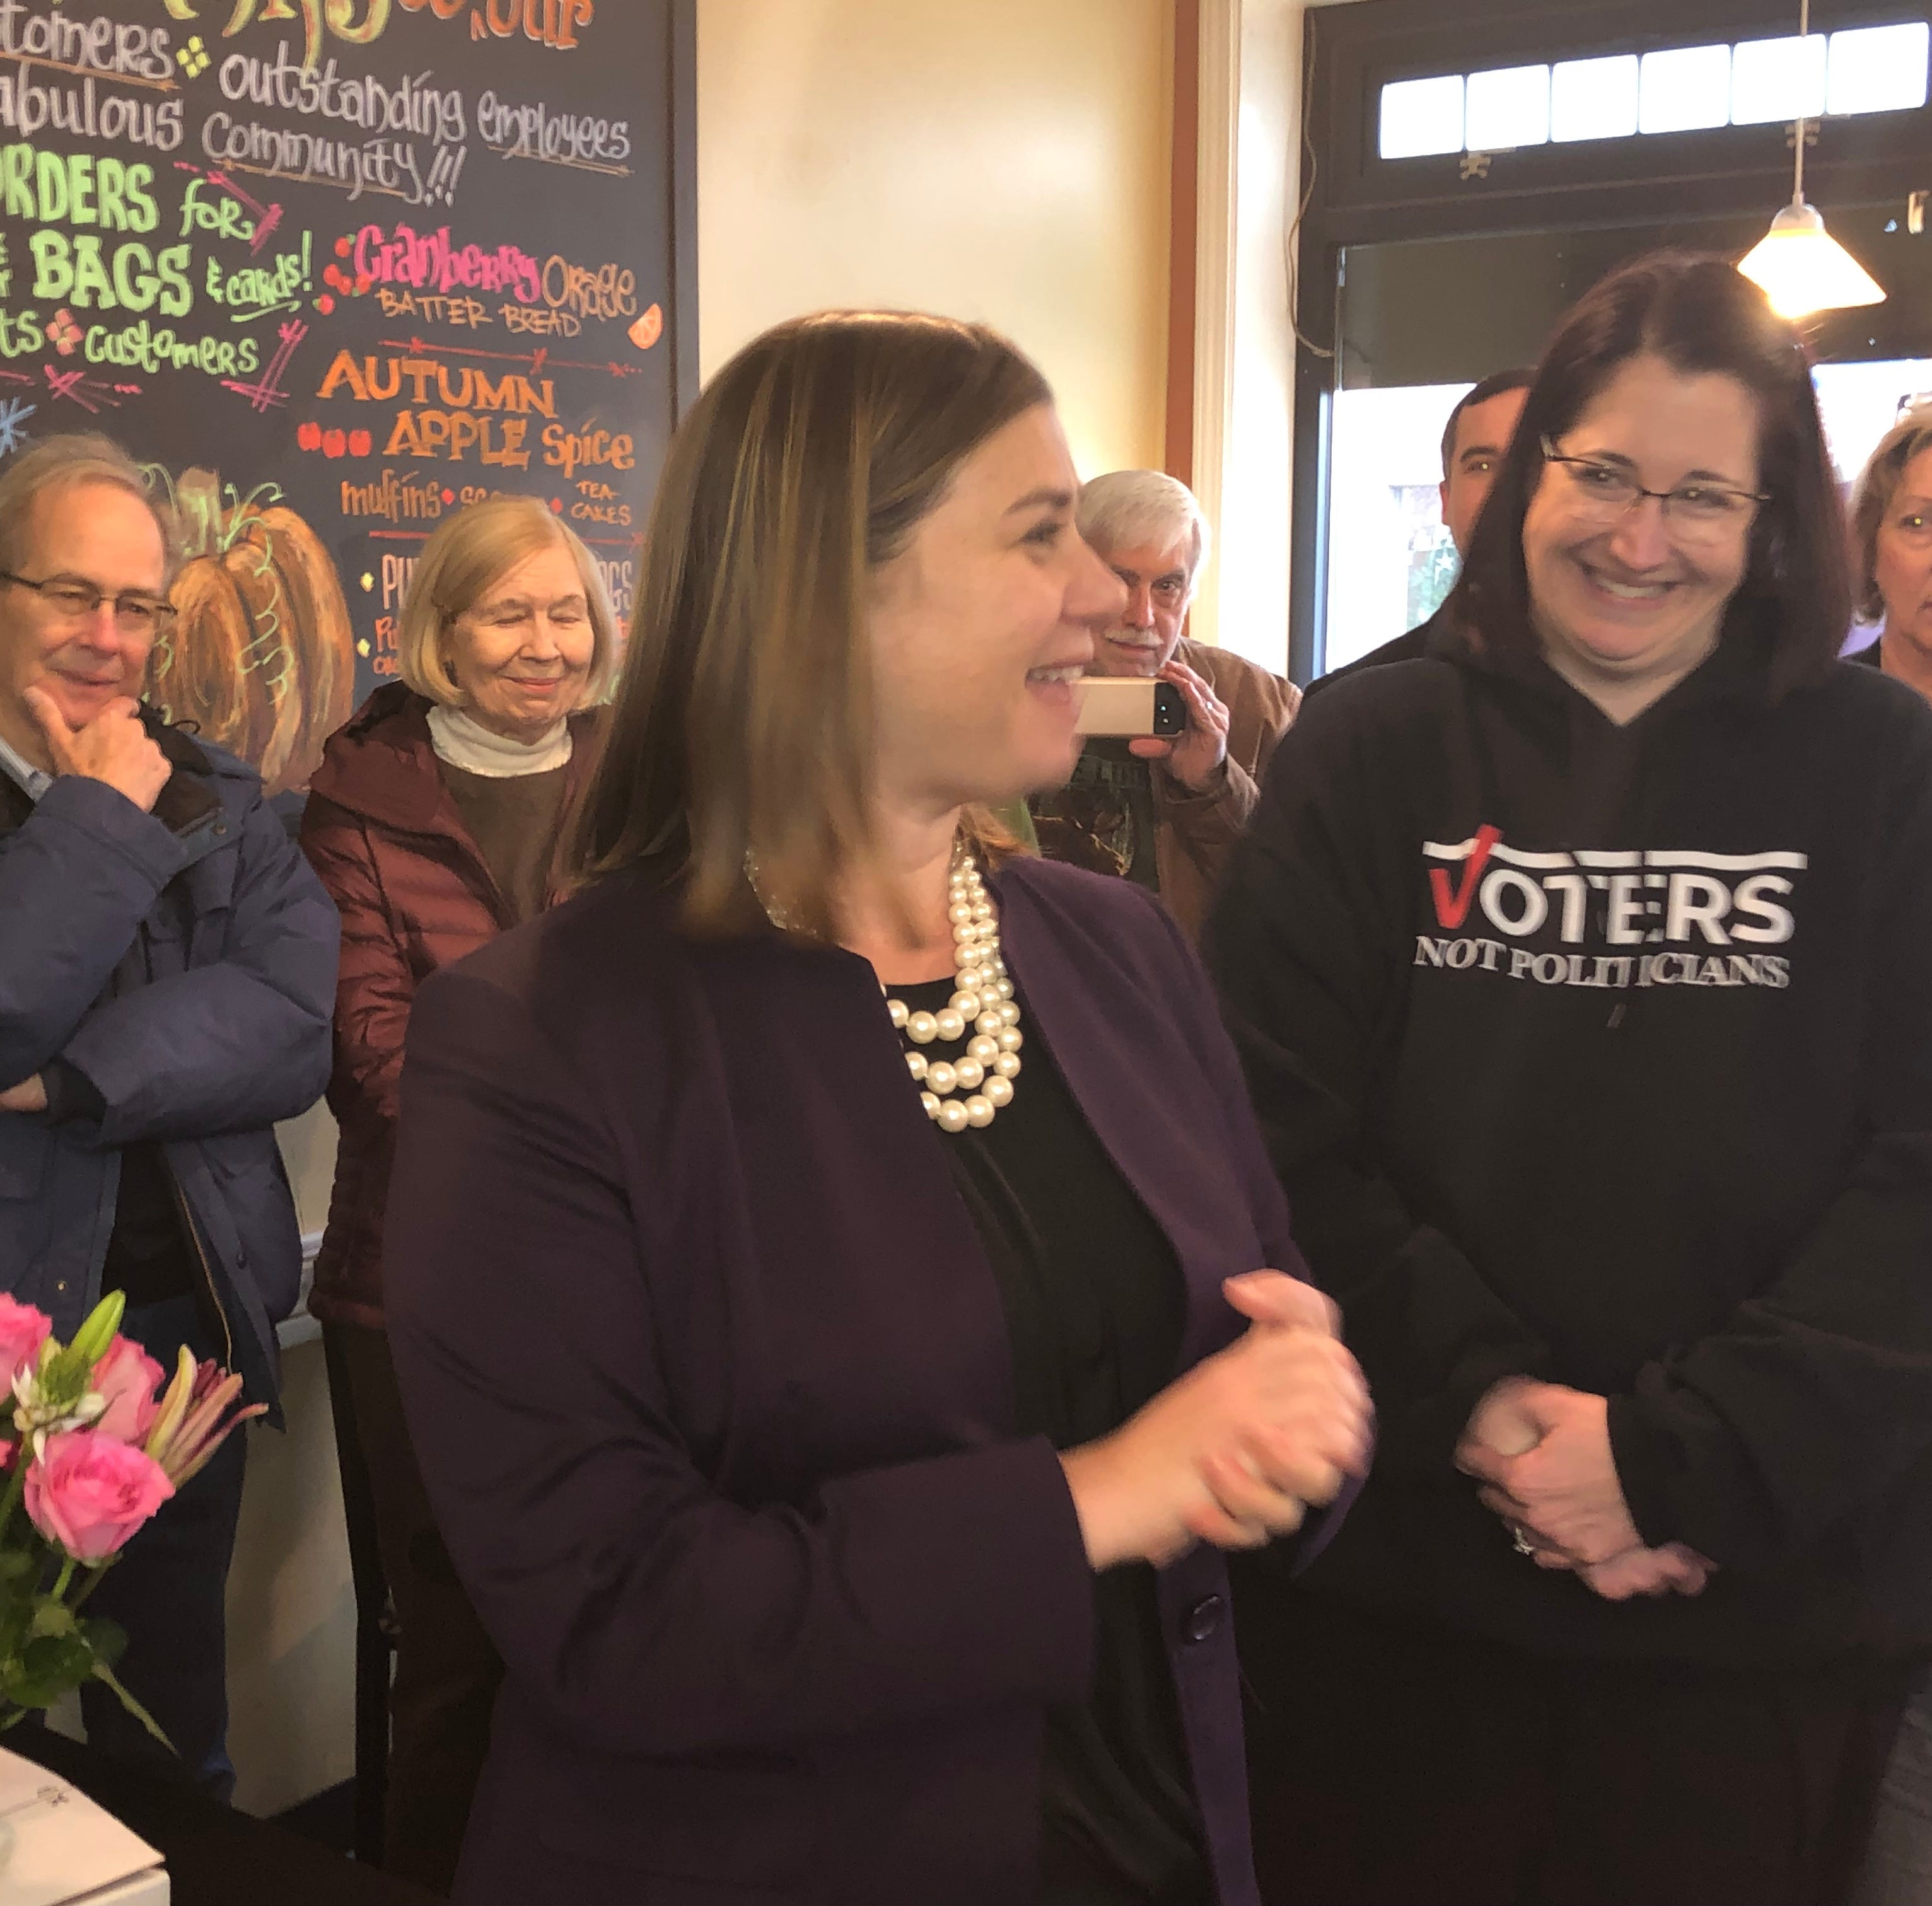 Elissa Slotkin meets with voters in Brighton, pledges to work for all despite losing county vote